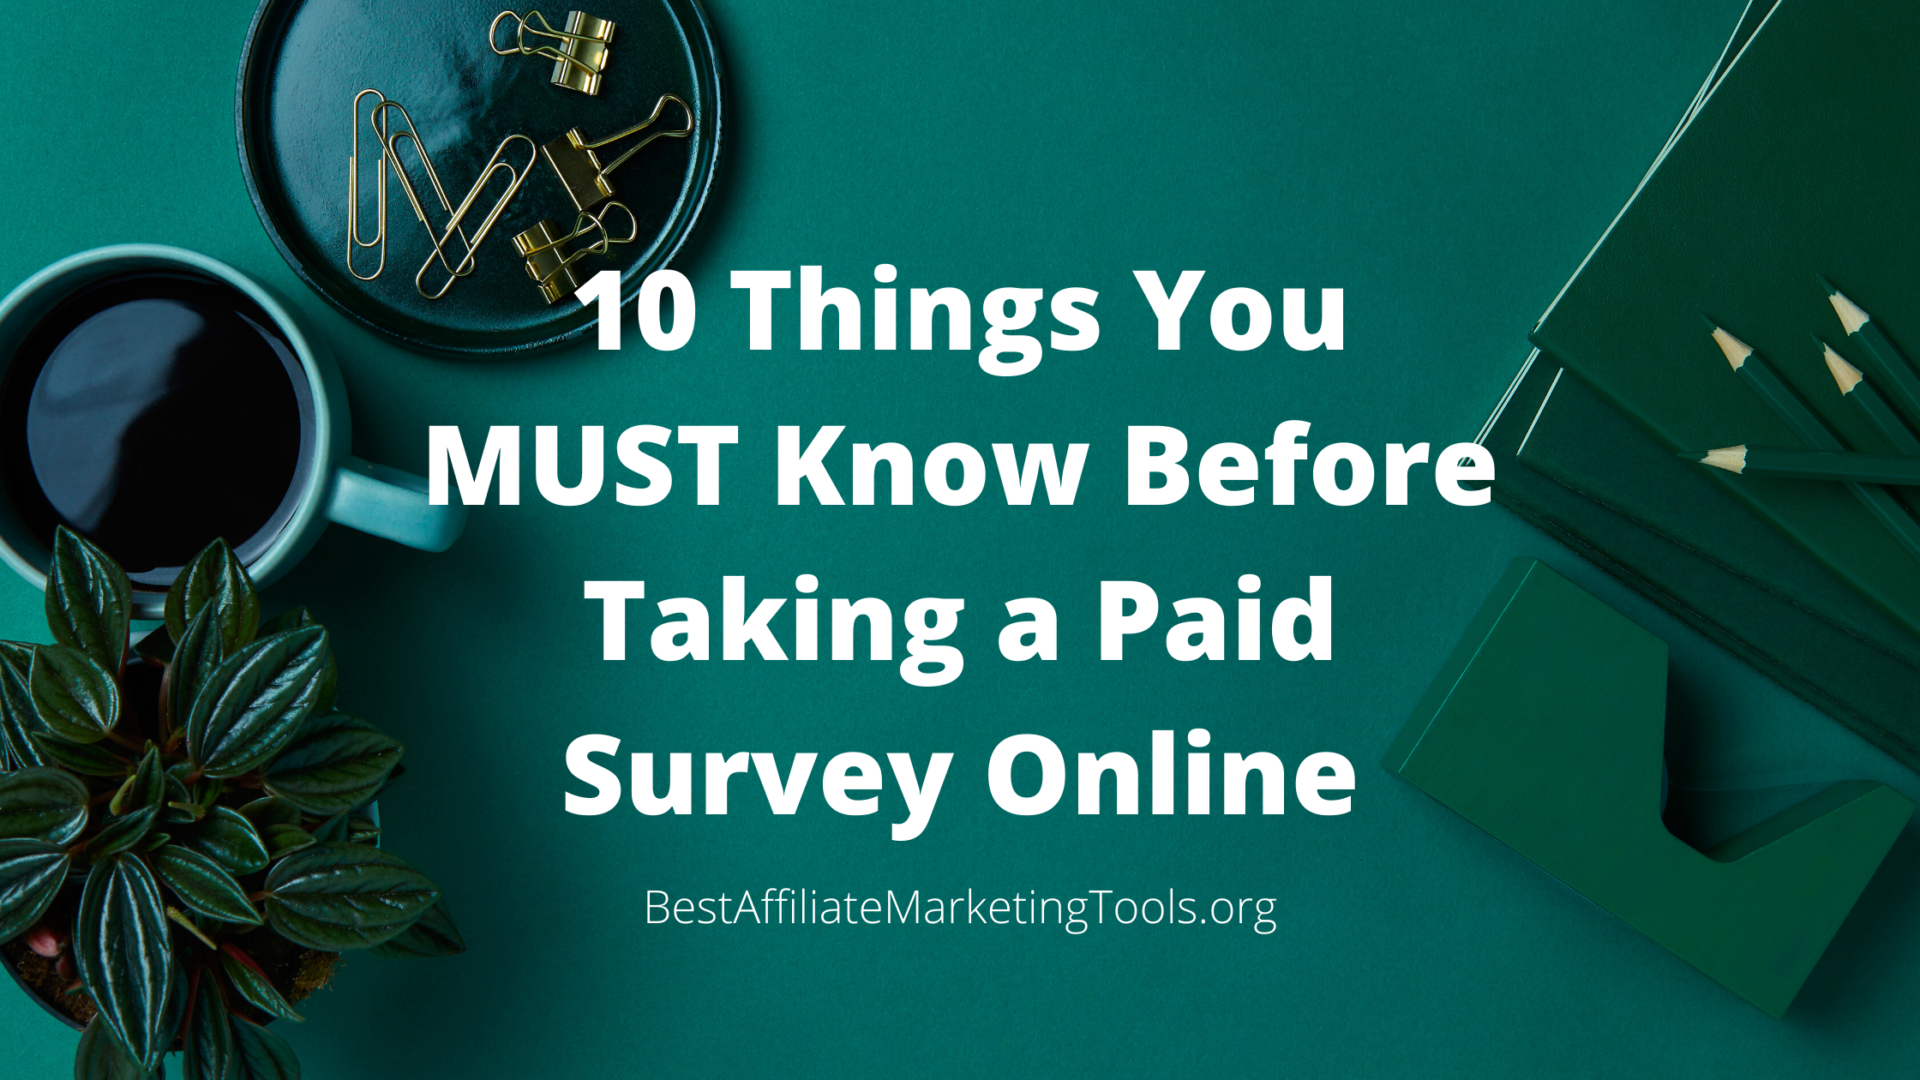 10 Things You MUST Know Before Taking a Paid Survey Online